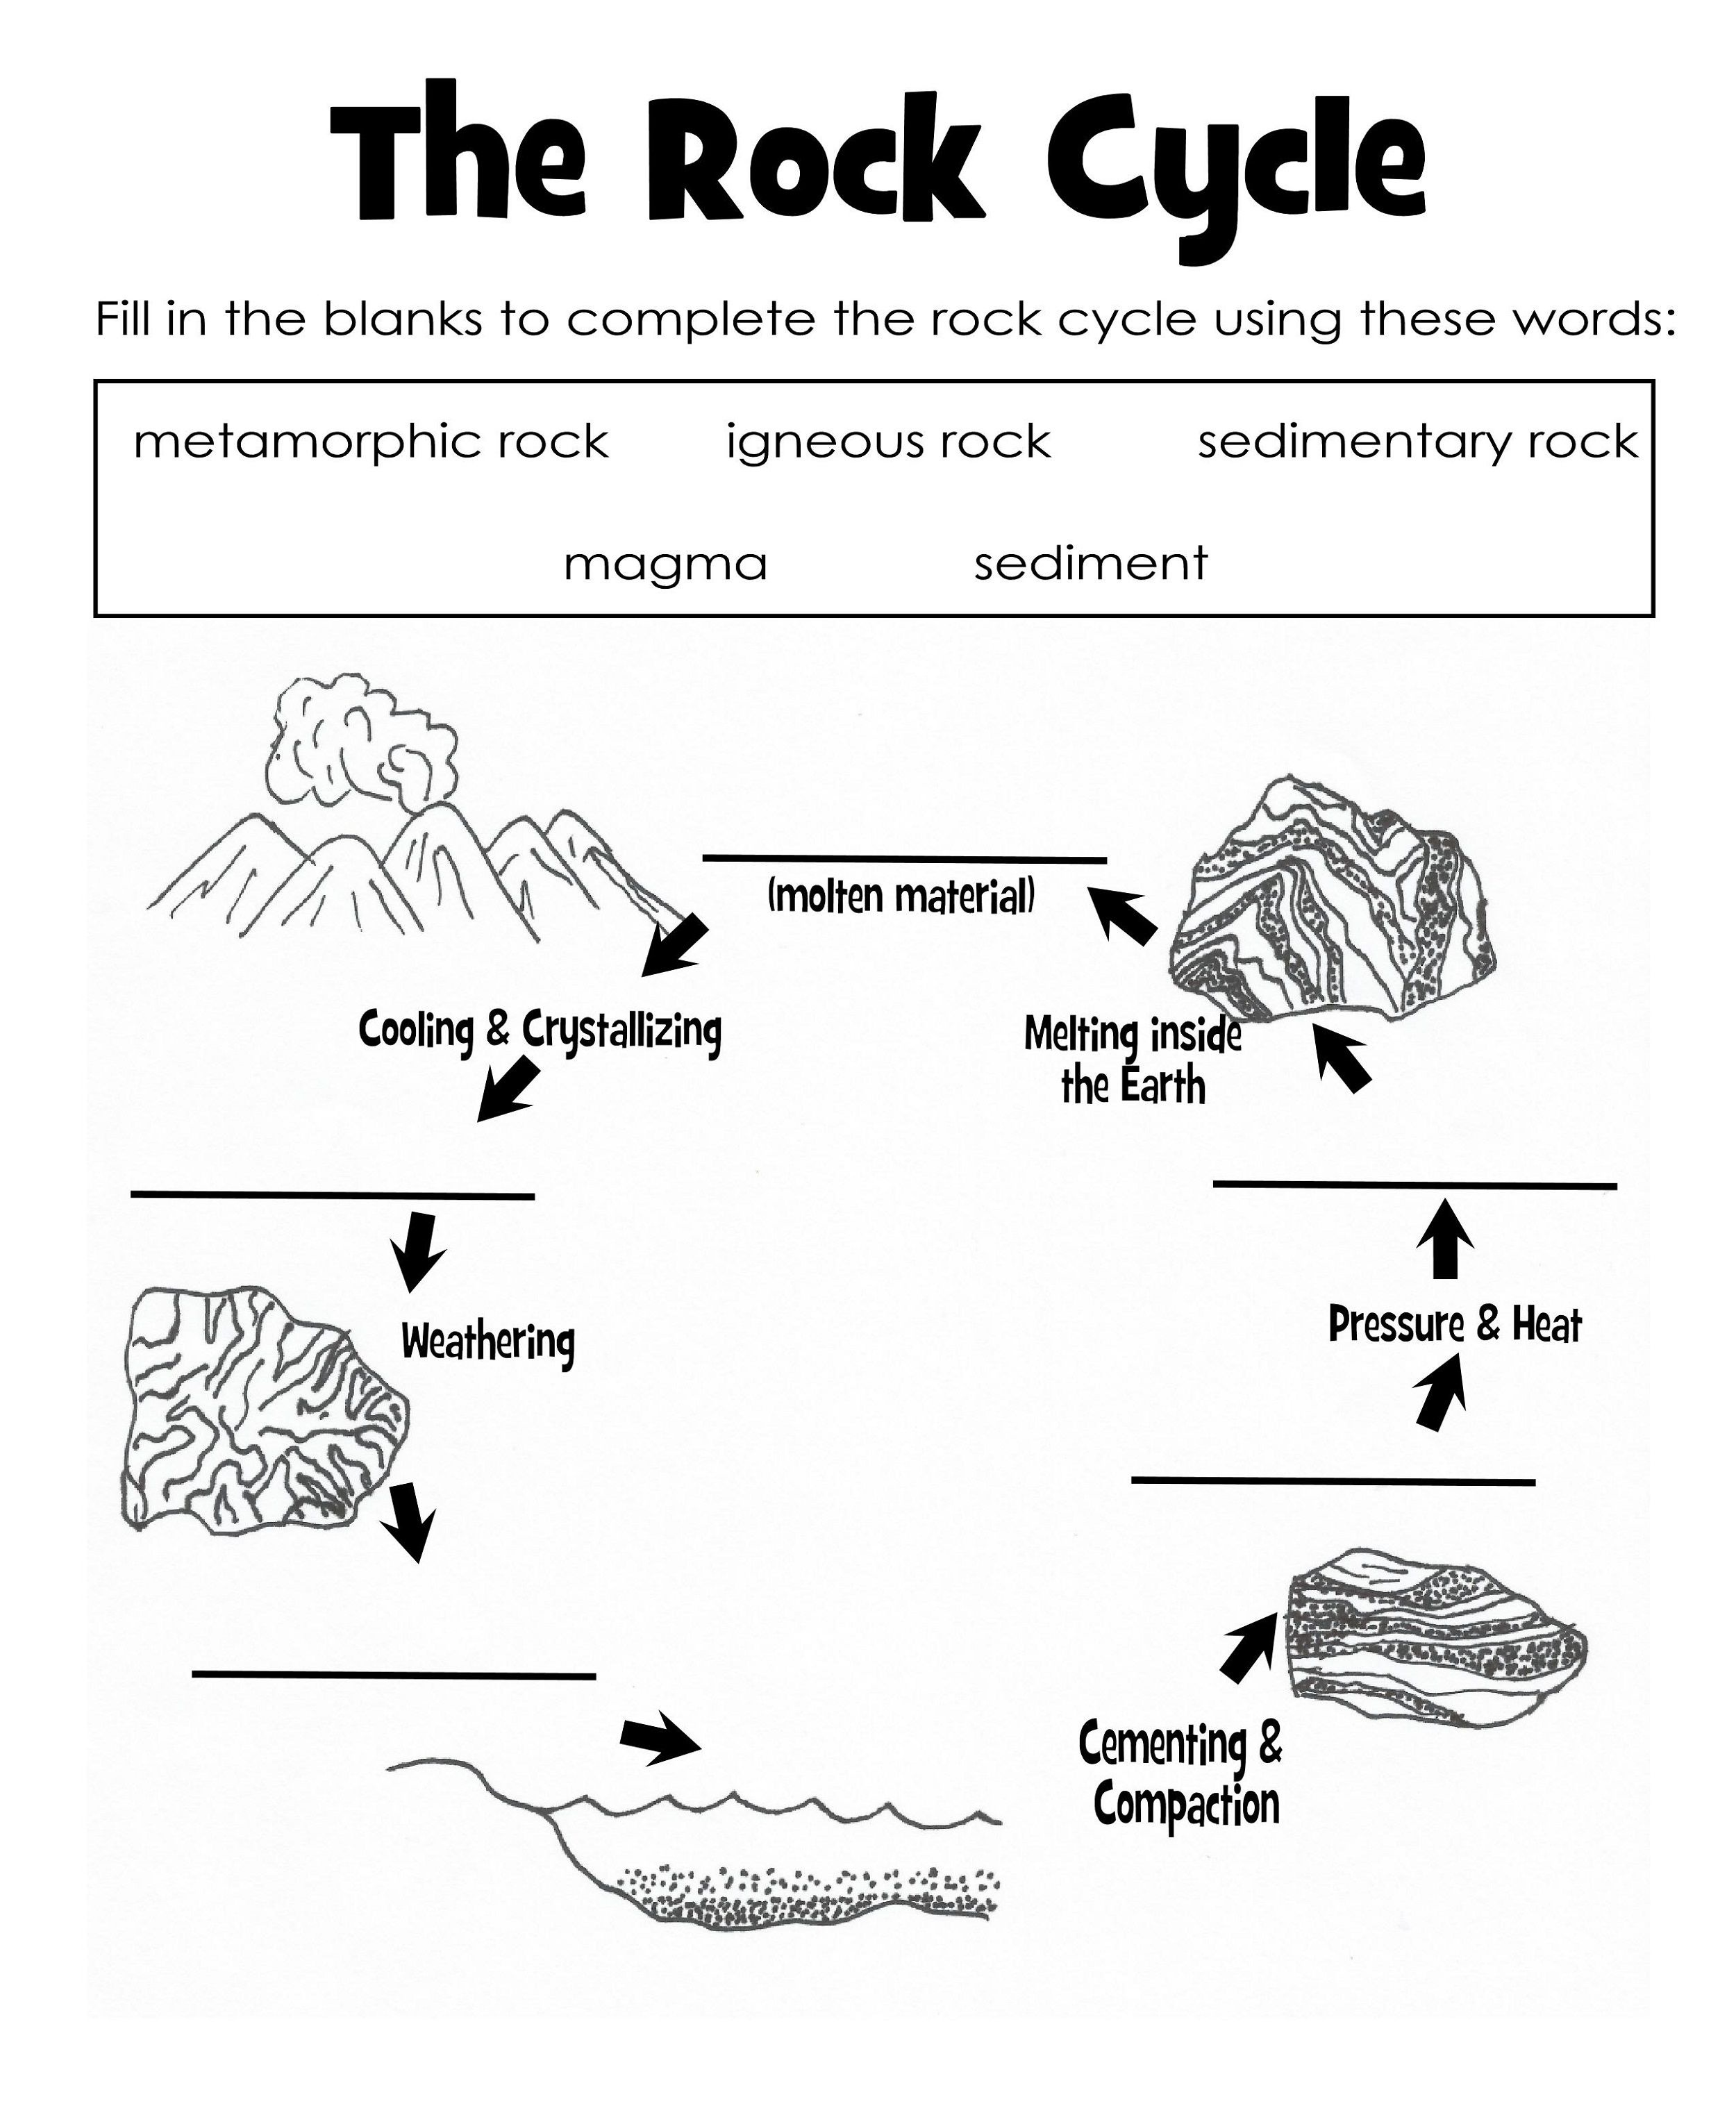 The Rock Cycle Diagram Worksheet Label | Science Printable For Kids - Rock Cycle Worksheets Free Printable